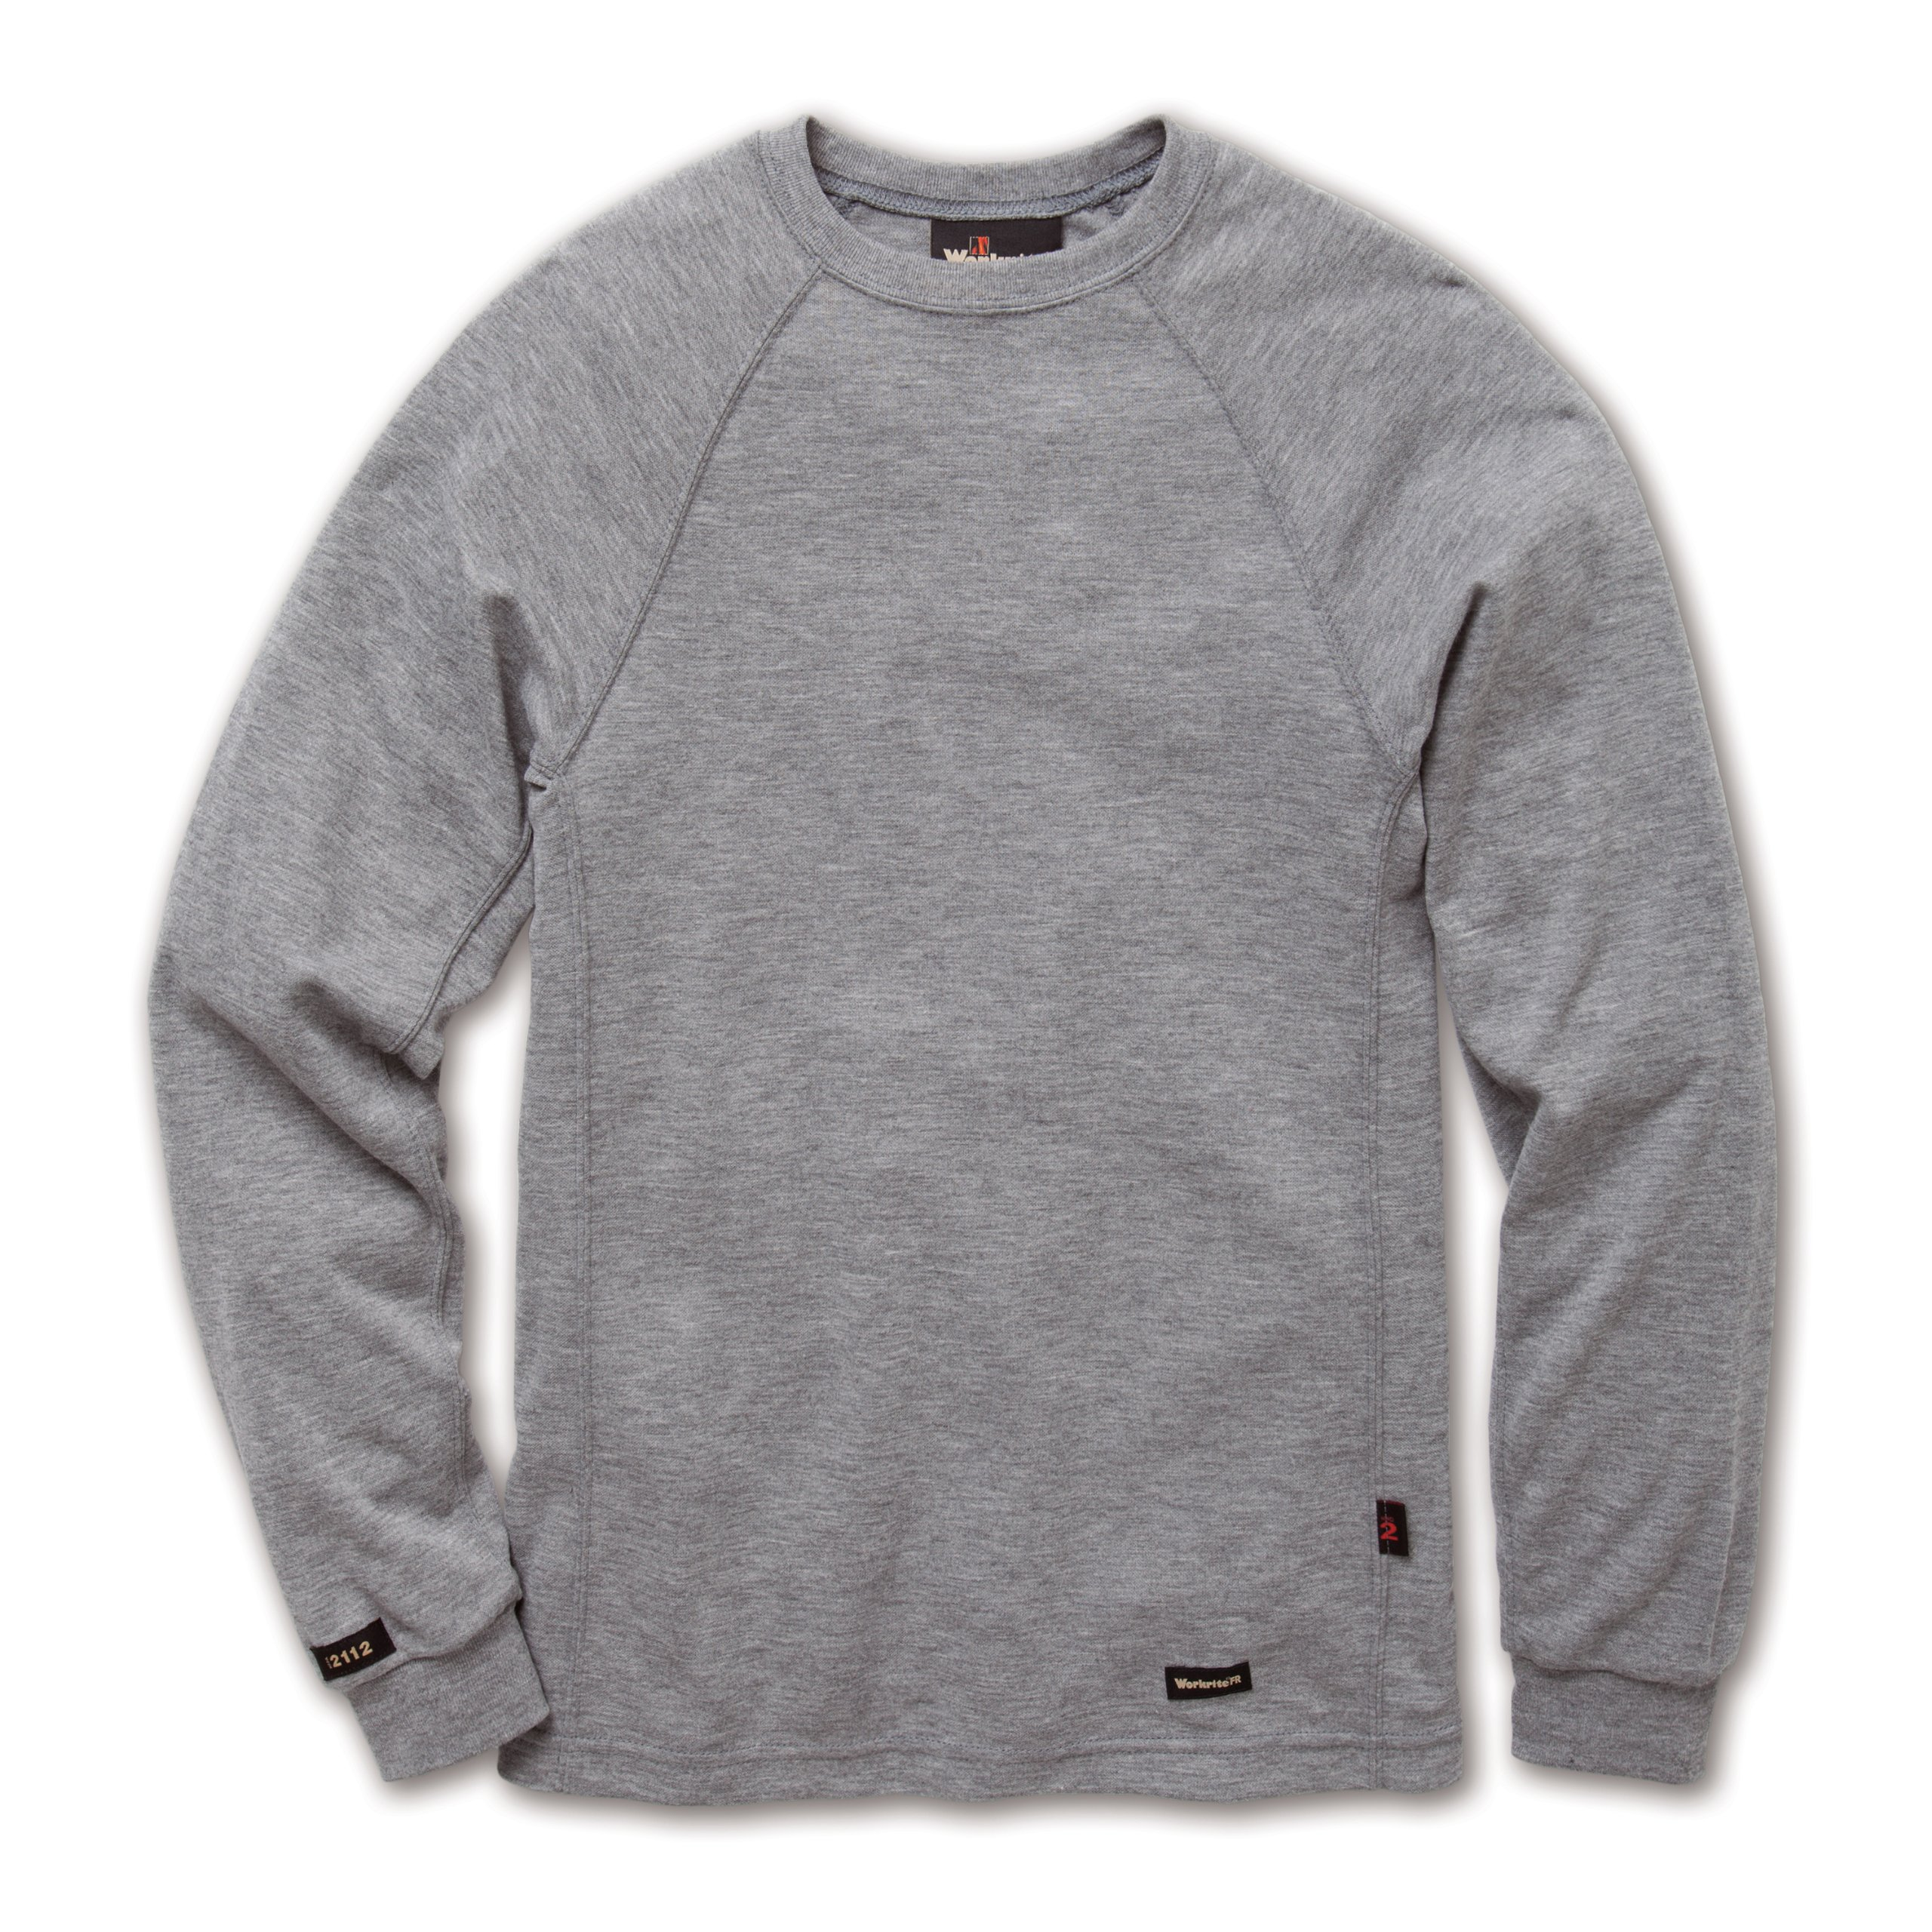 Workrite 277TK67HGMD-00 Flame Resistant 6.7 oz Tecasafe Plus Knit Long Sleeve T-Shirt, Ribbed Cuff, Medium, Heather Gray